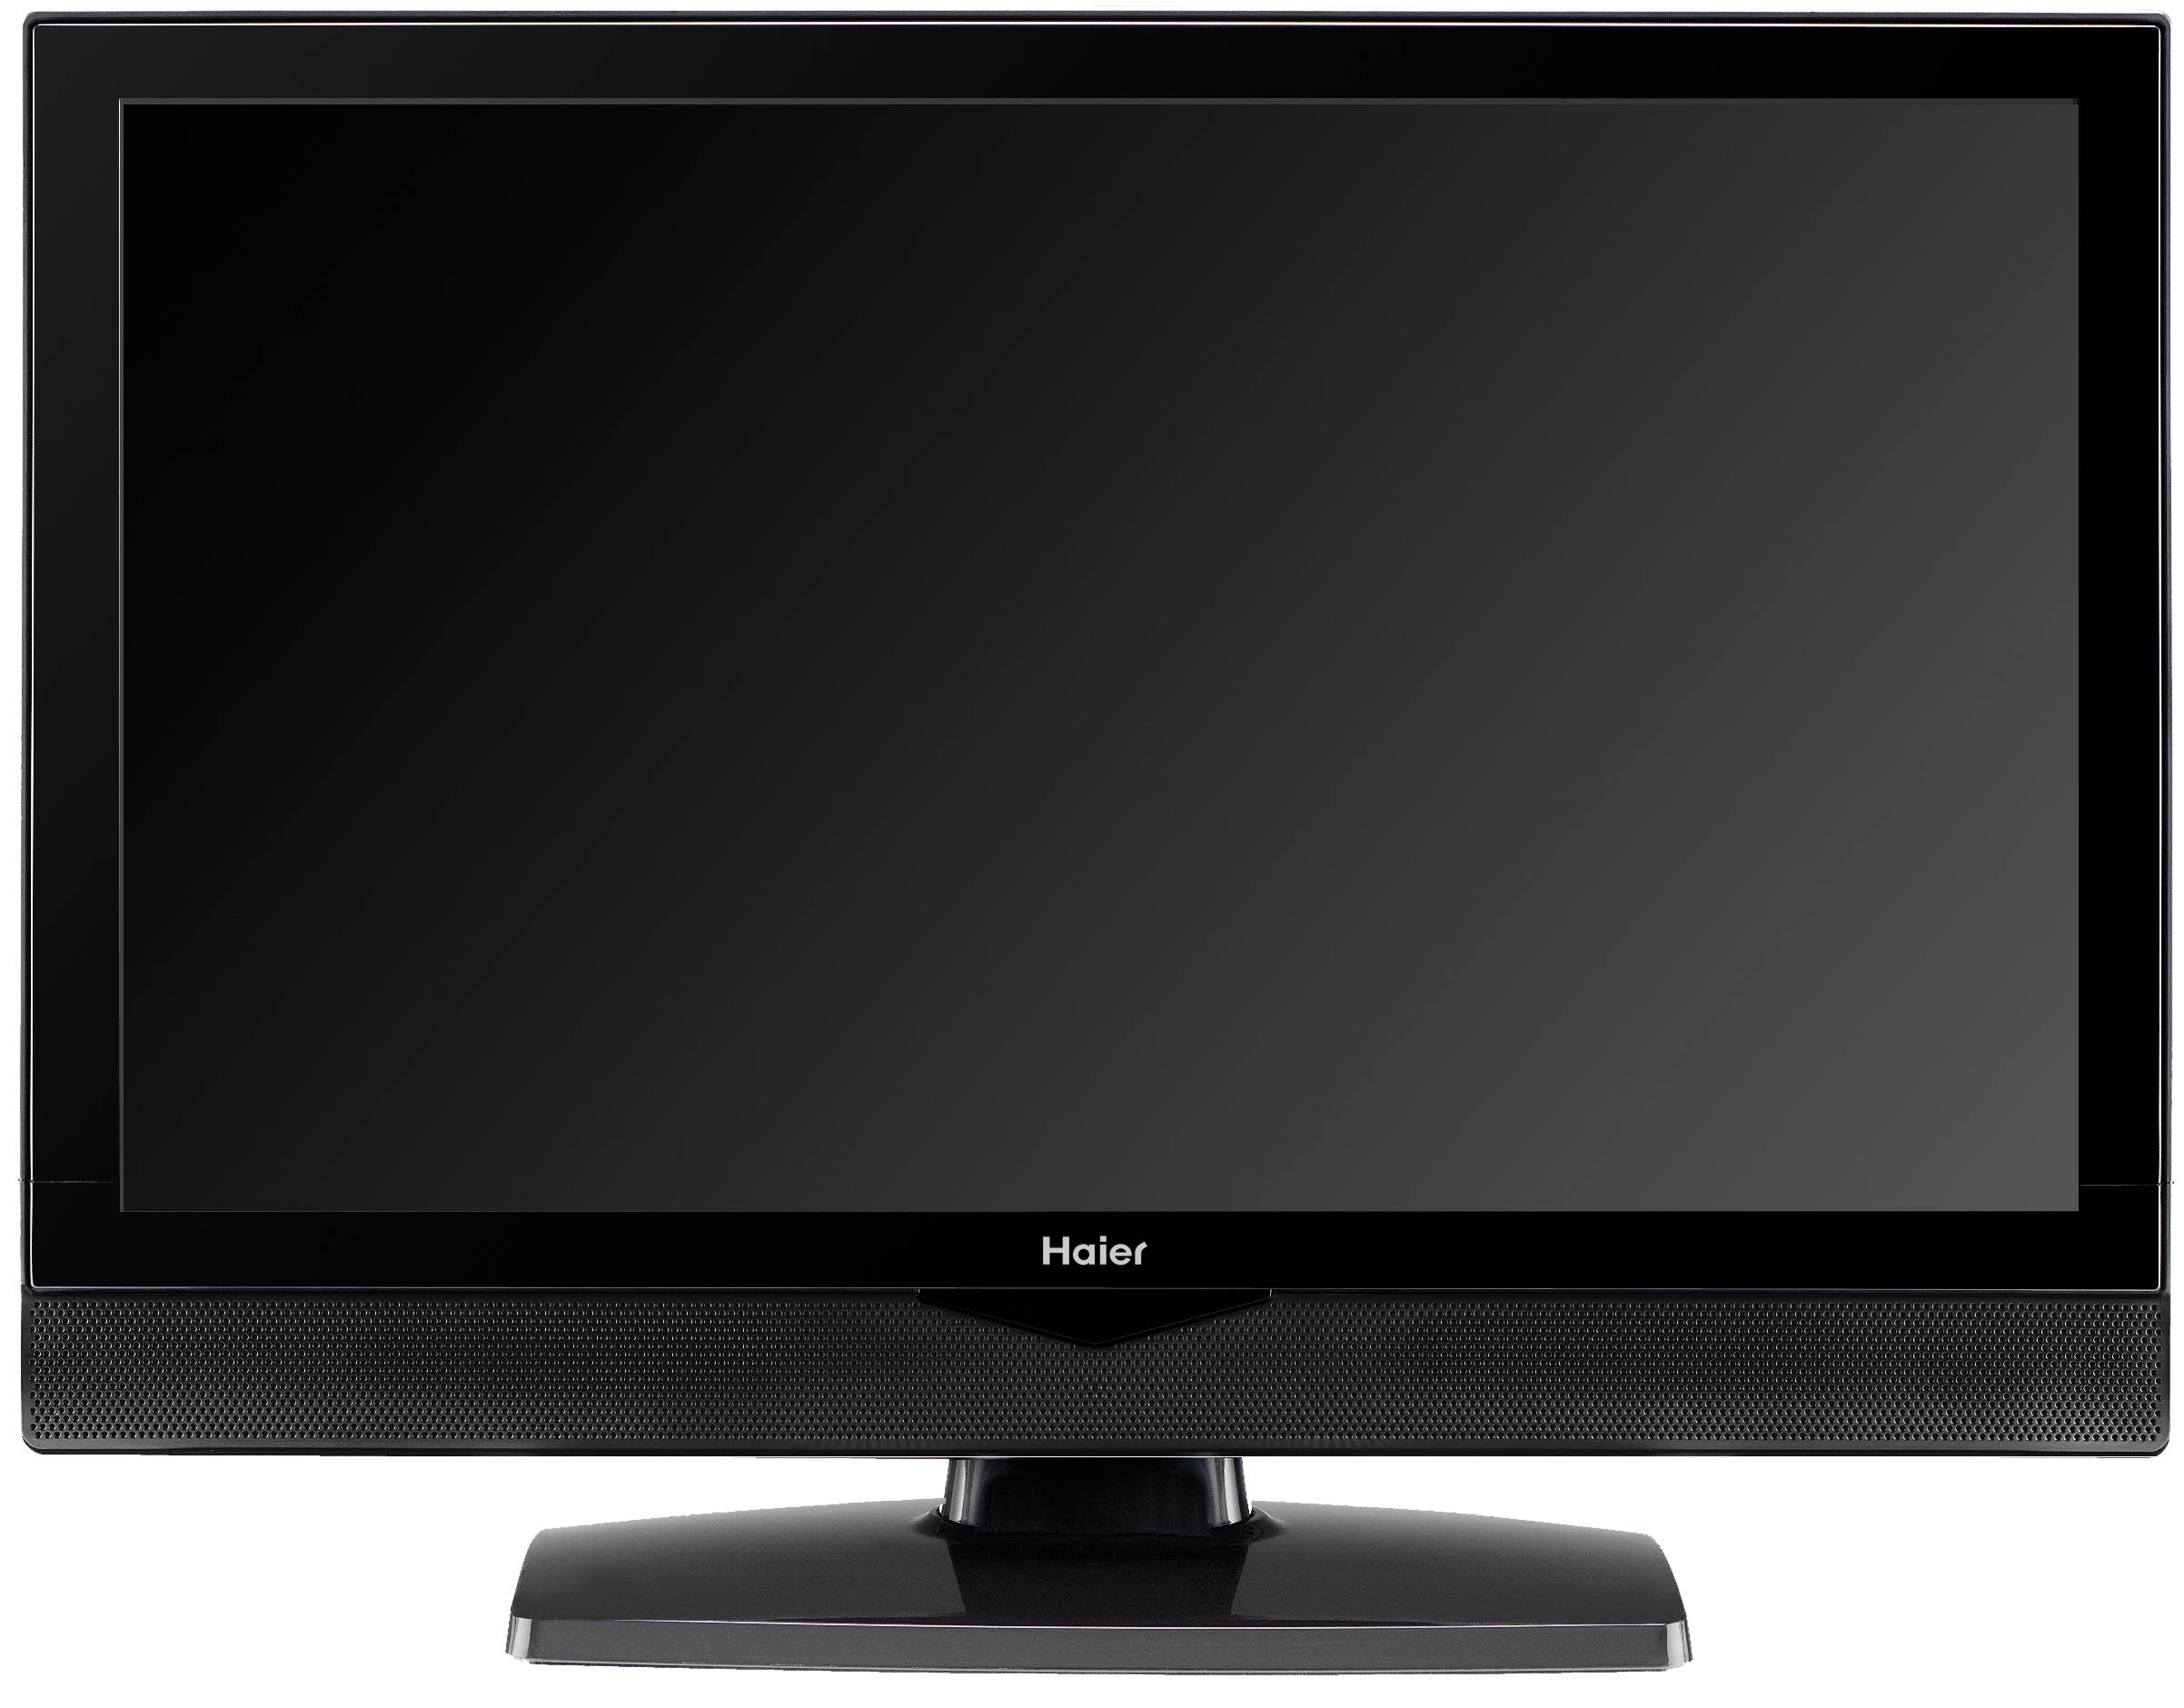 haier hl19d2 19 inch d series lcd hdtv. Black Bedroom Furniture Sets. Home Design Ideas